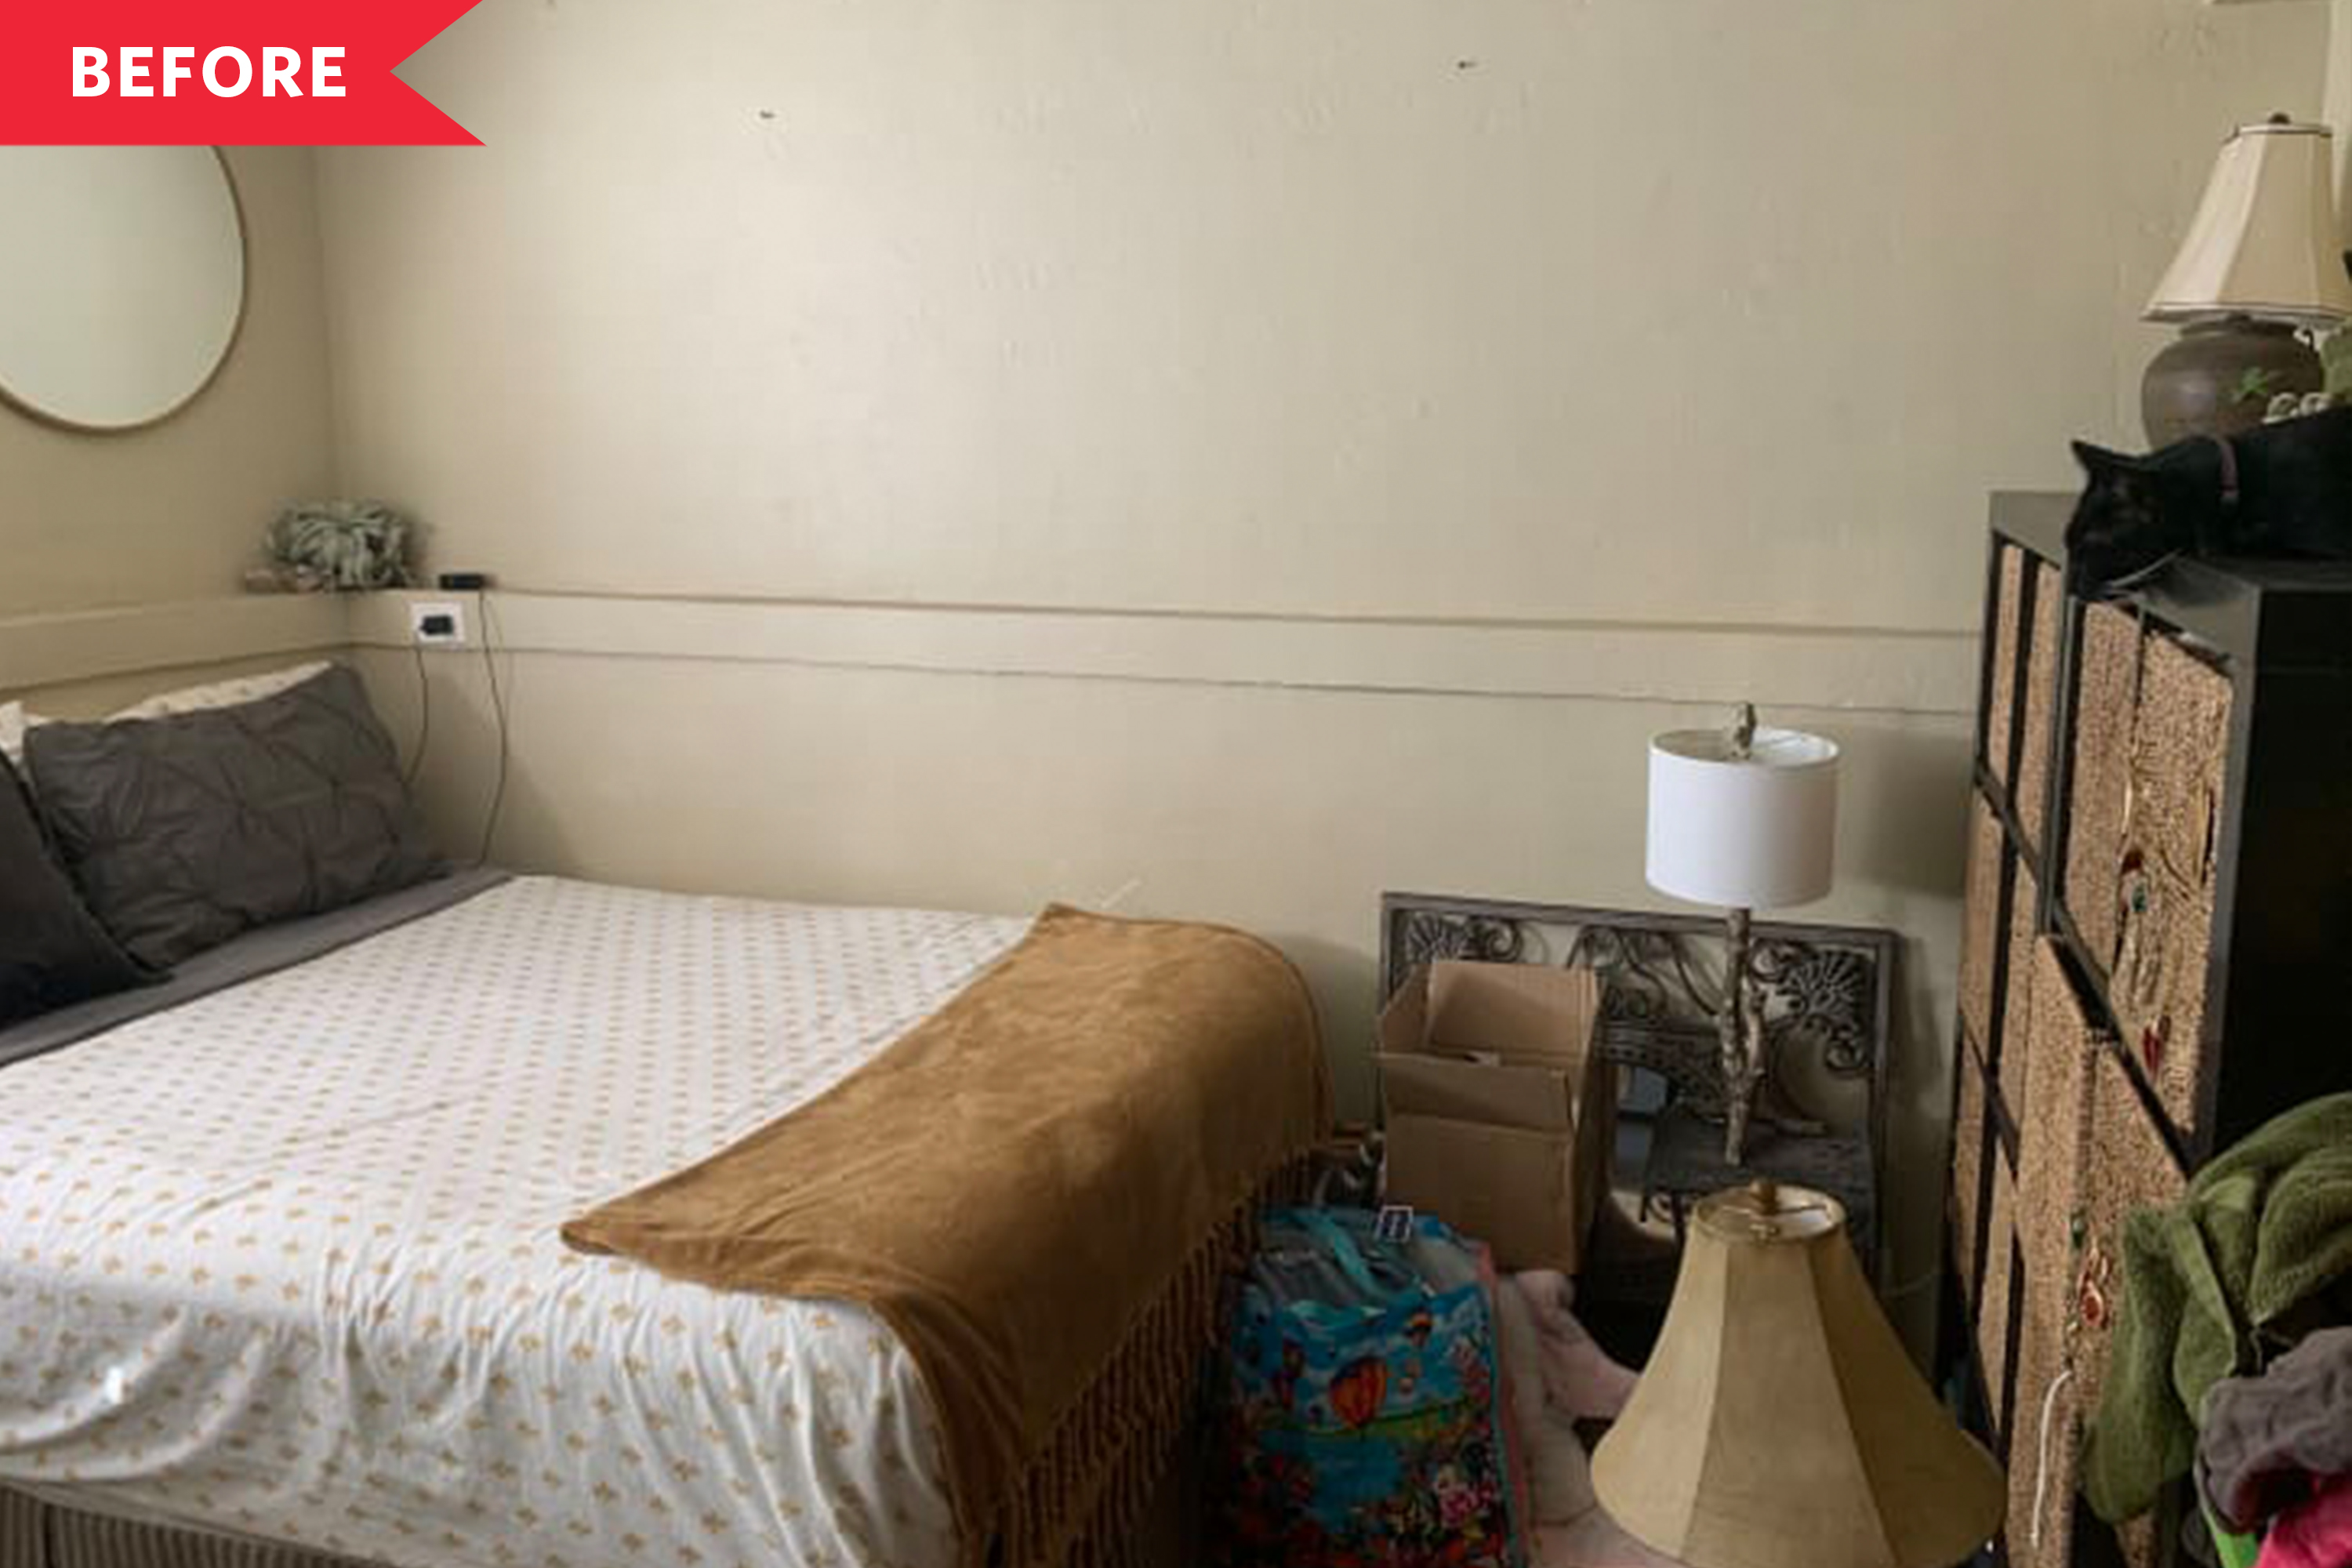 Before and After: A Cramped Bedroom Gets a Space-Maximizing Boho Redo